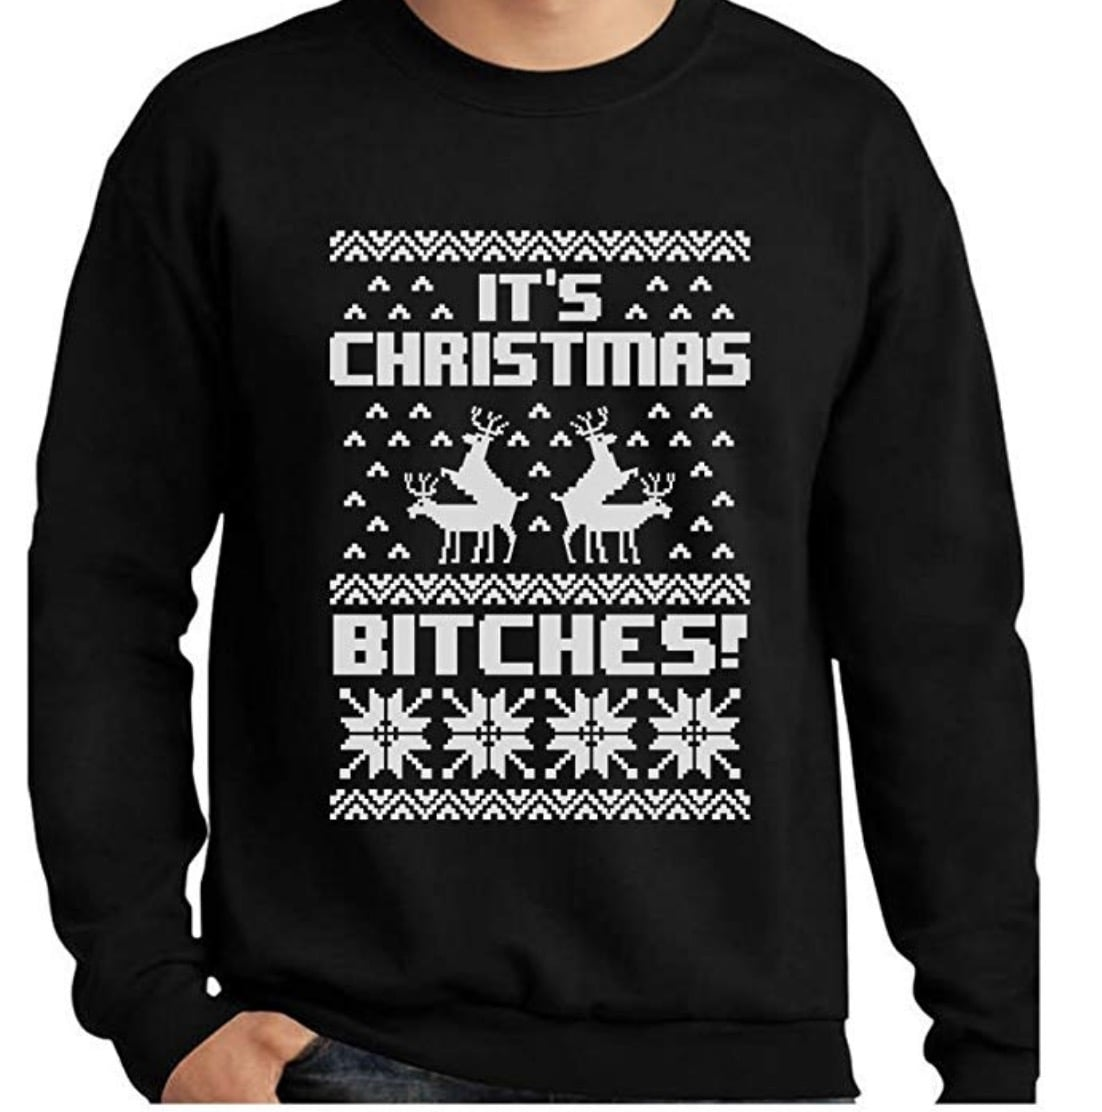 It's Christmas Bitches Christmas Sweater